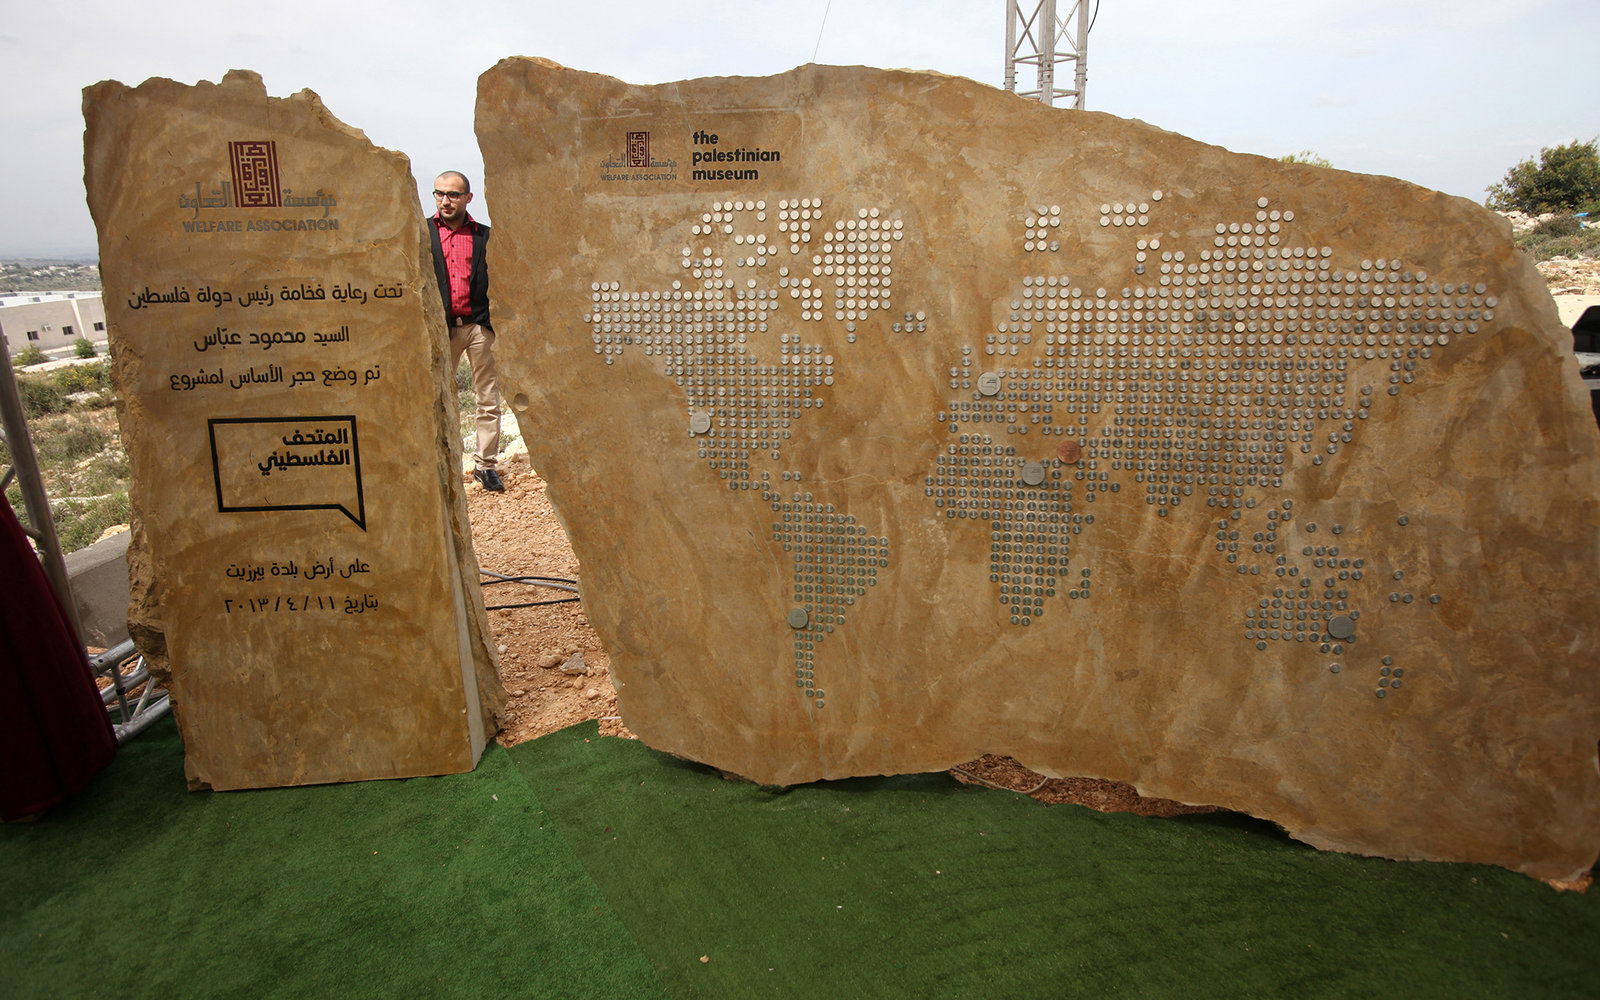 A picture taken on April 11, 2013 shows the fountdation stone of the new Palestinian Museum in the Bir Zeit district of the West Bank city of Ramallah. Palestinians have started the first phase of costruction of a museum devoted to their history. AFP PHOT